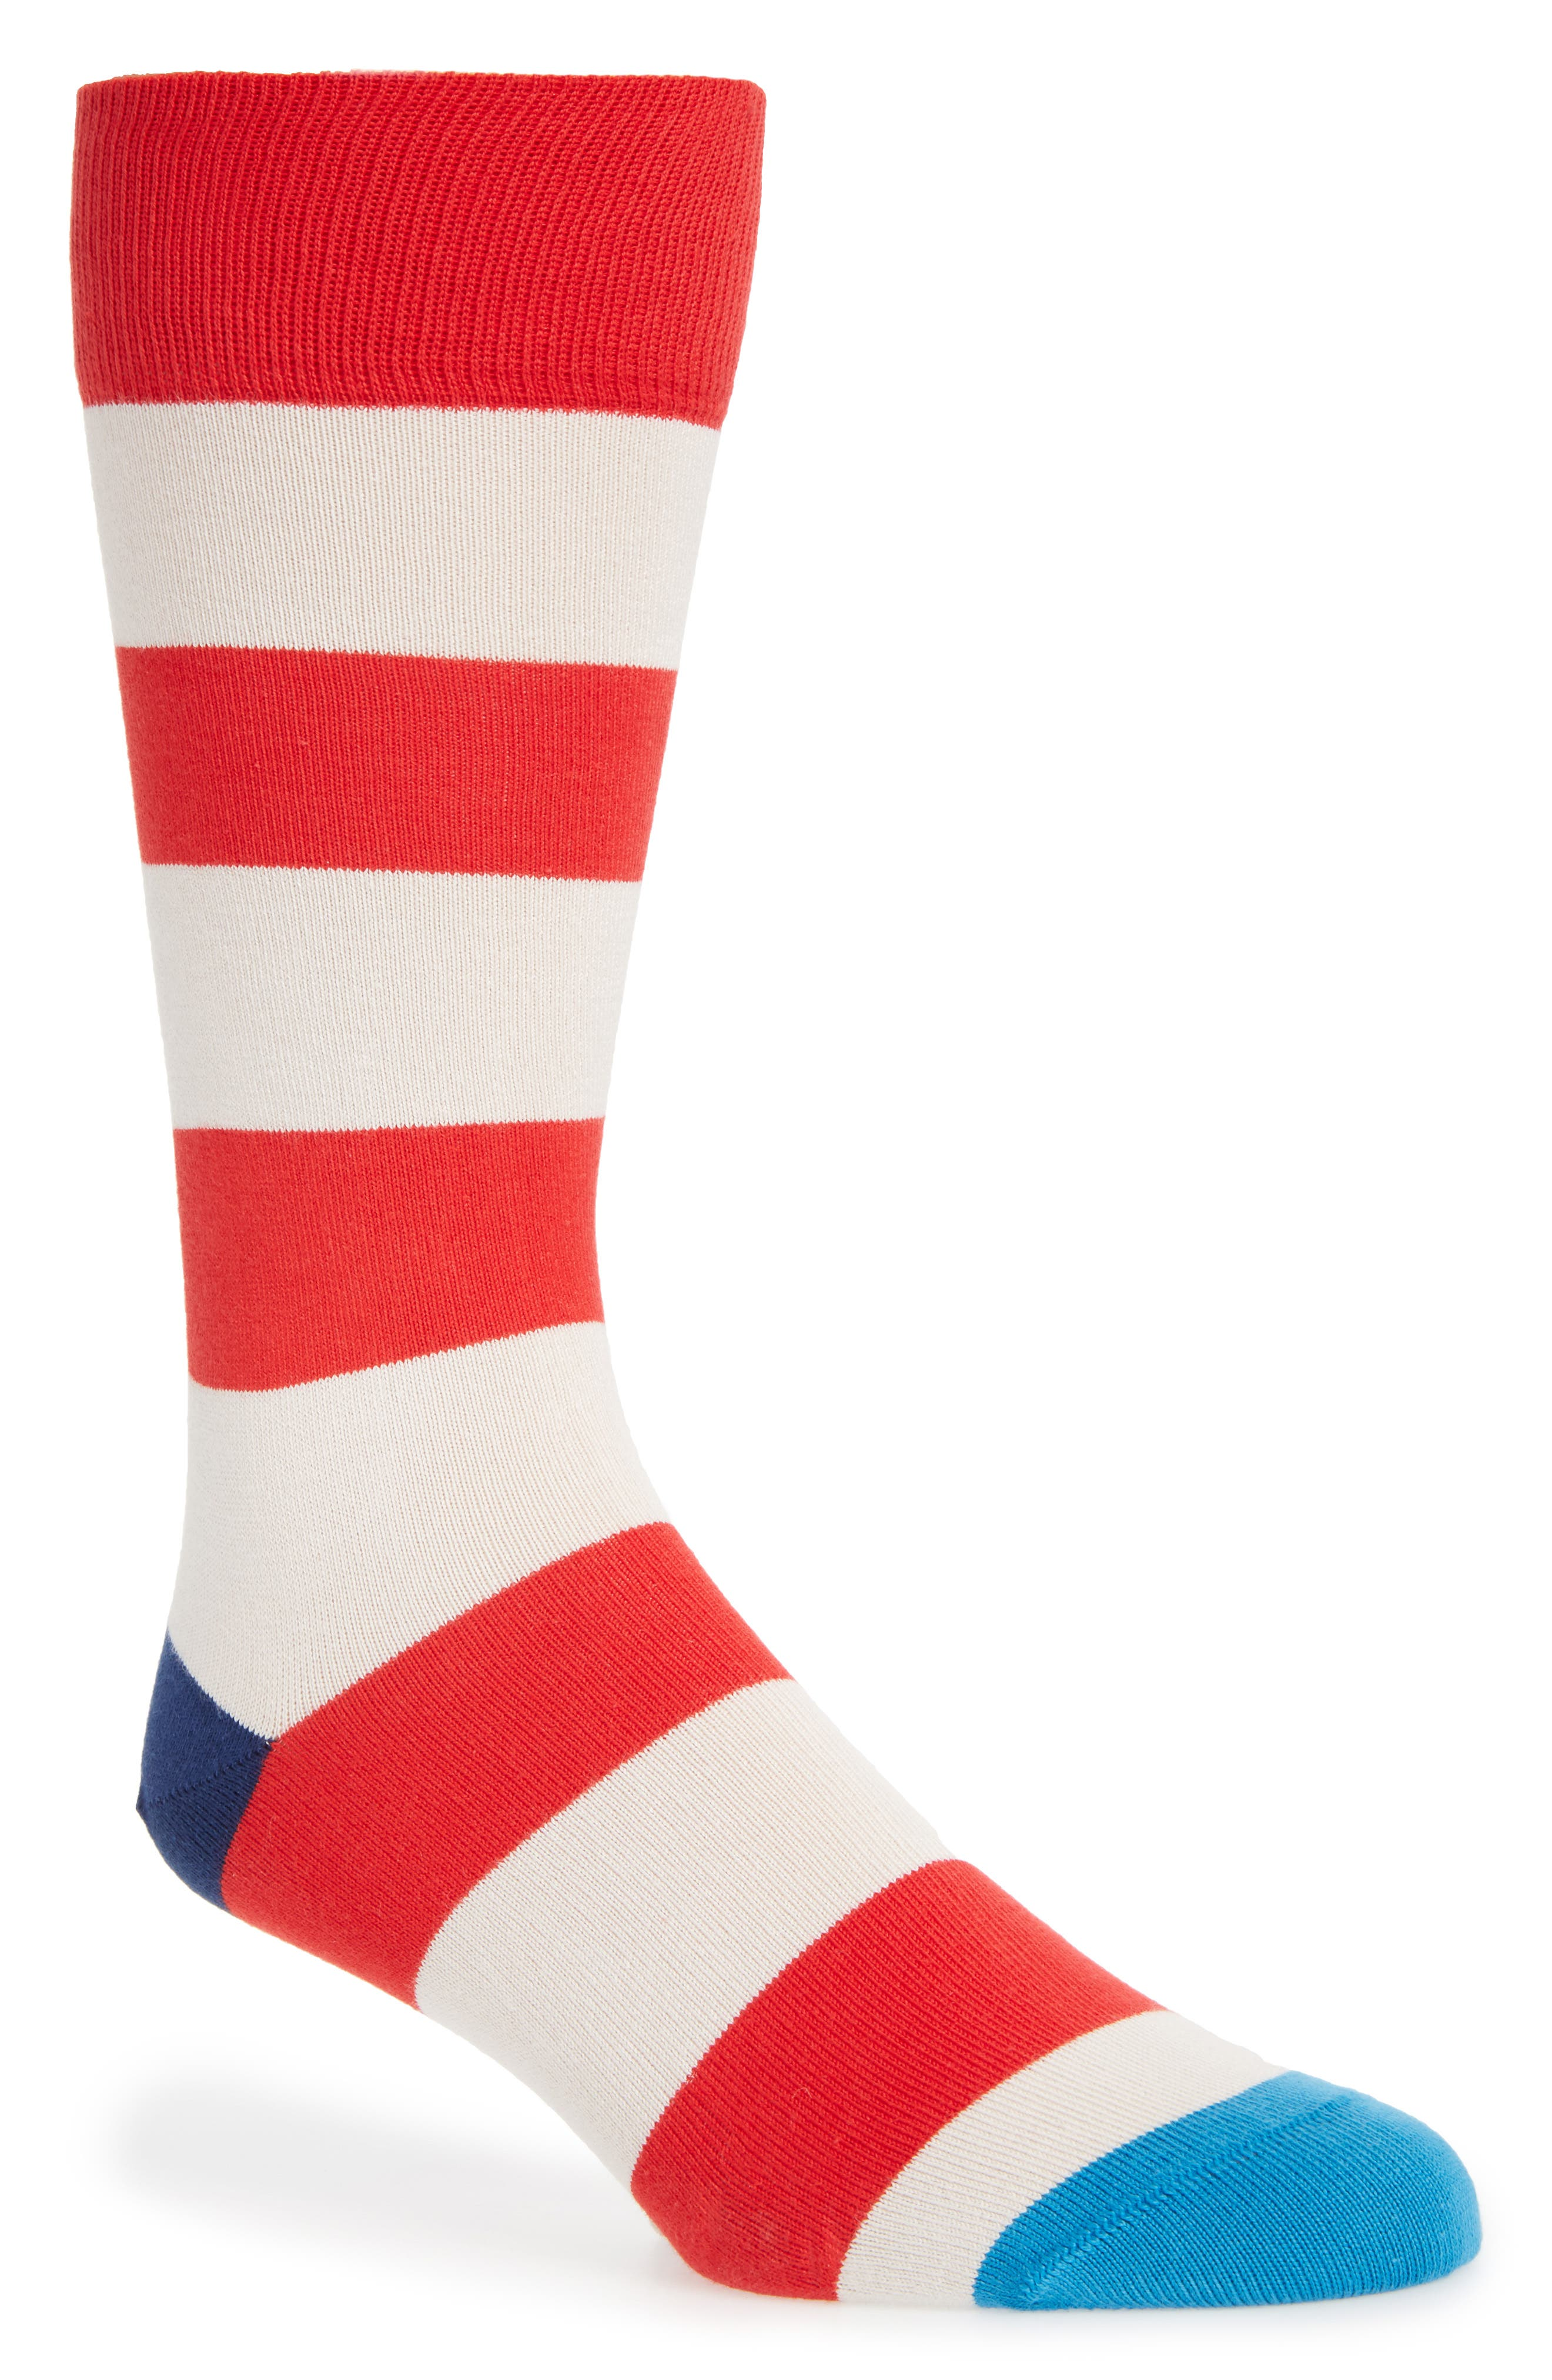 Paul Smith Parton Socks